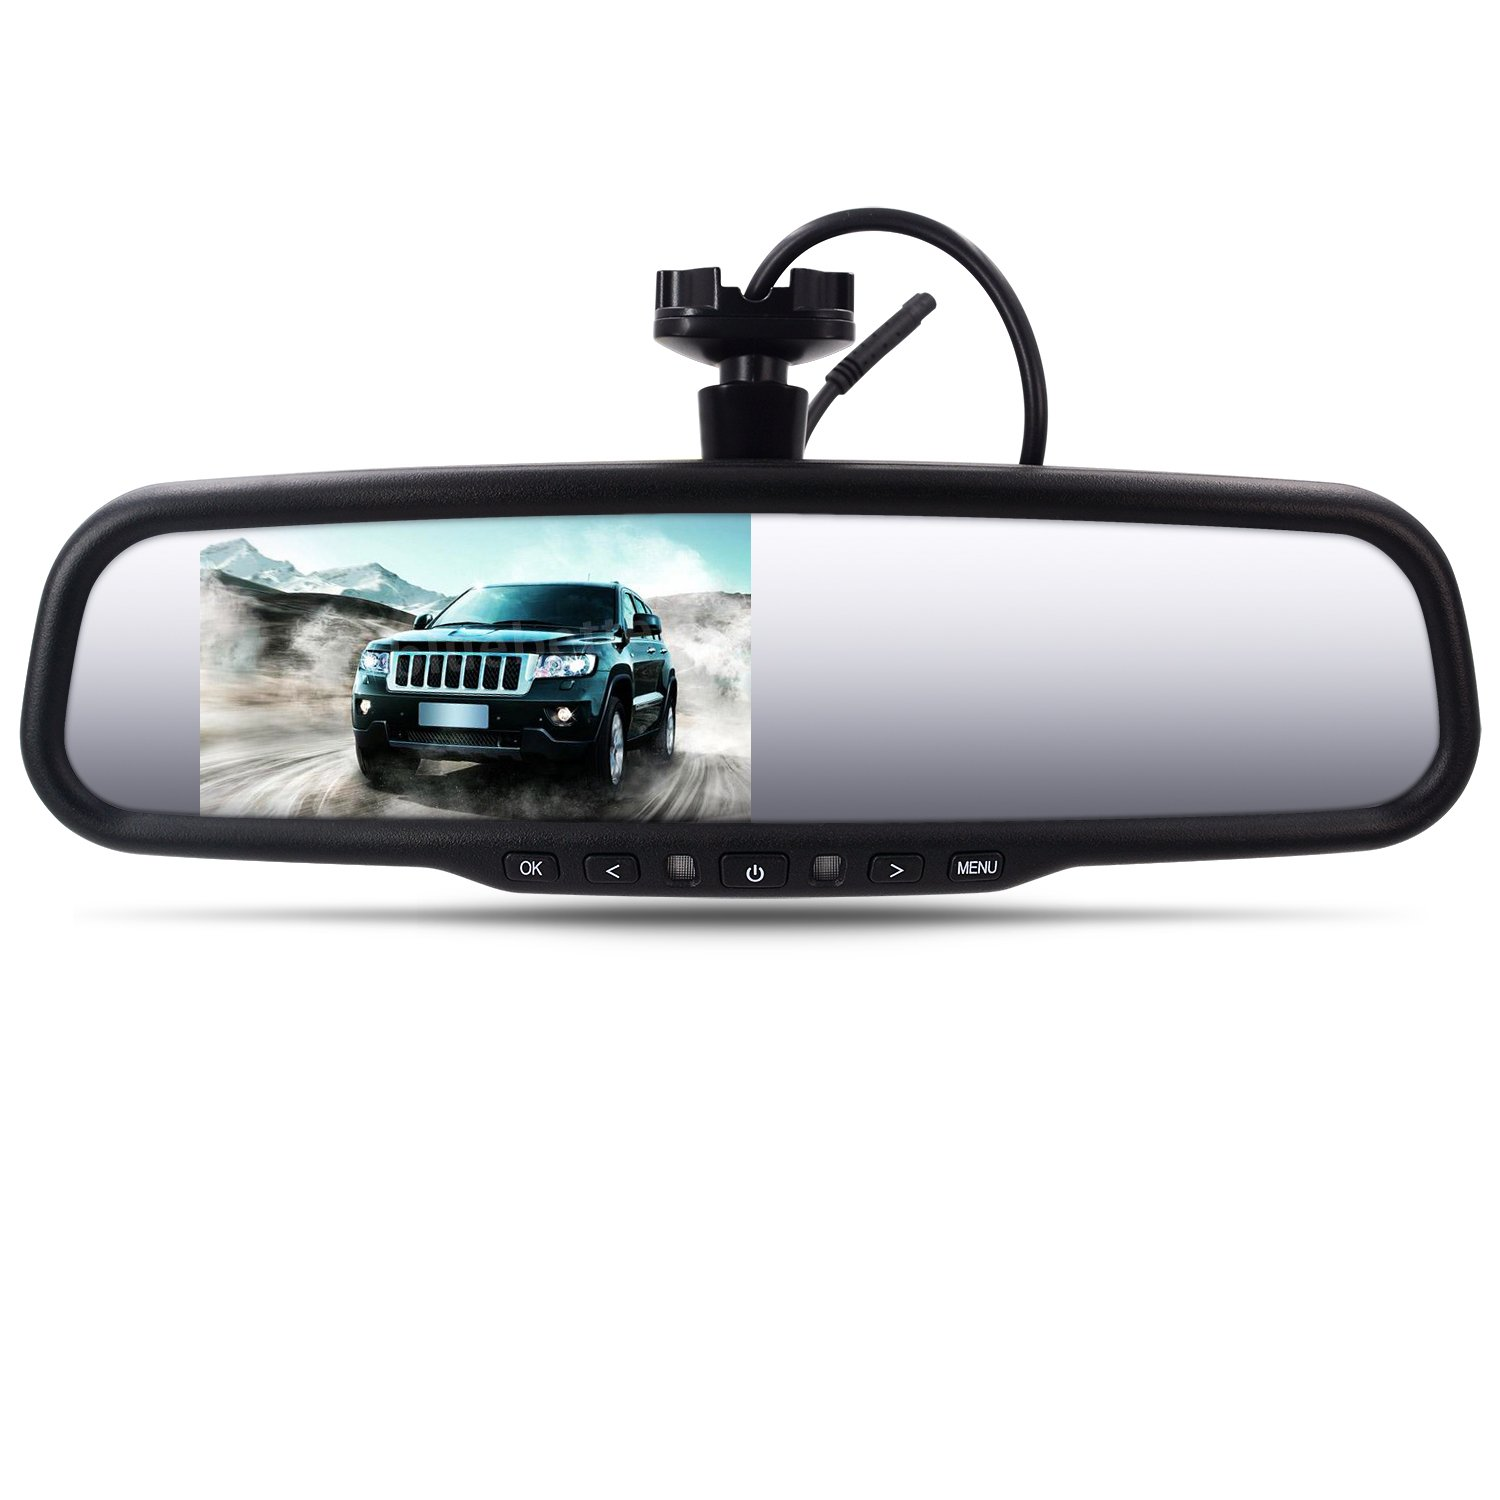 ARECORD AR438 4.3'' Wifi Car Rear View Mirror Monitor for Toyota Honda Nissan Mazda Hyundai Kia Ford Pickup SUV - Support iOS & Android & Auto Parking Assistance System